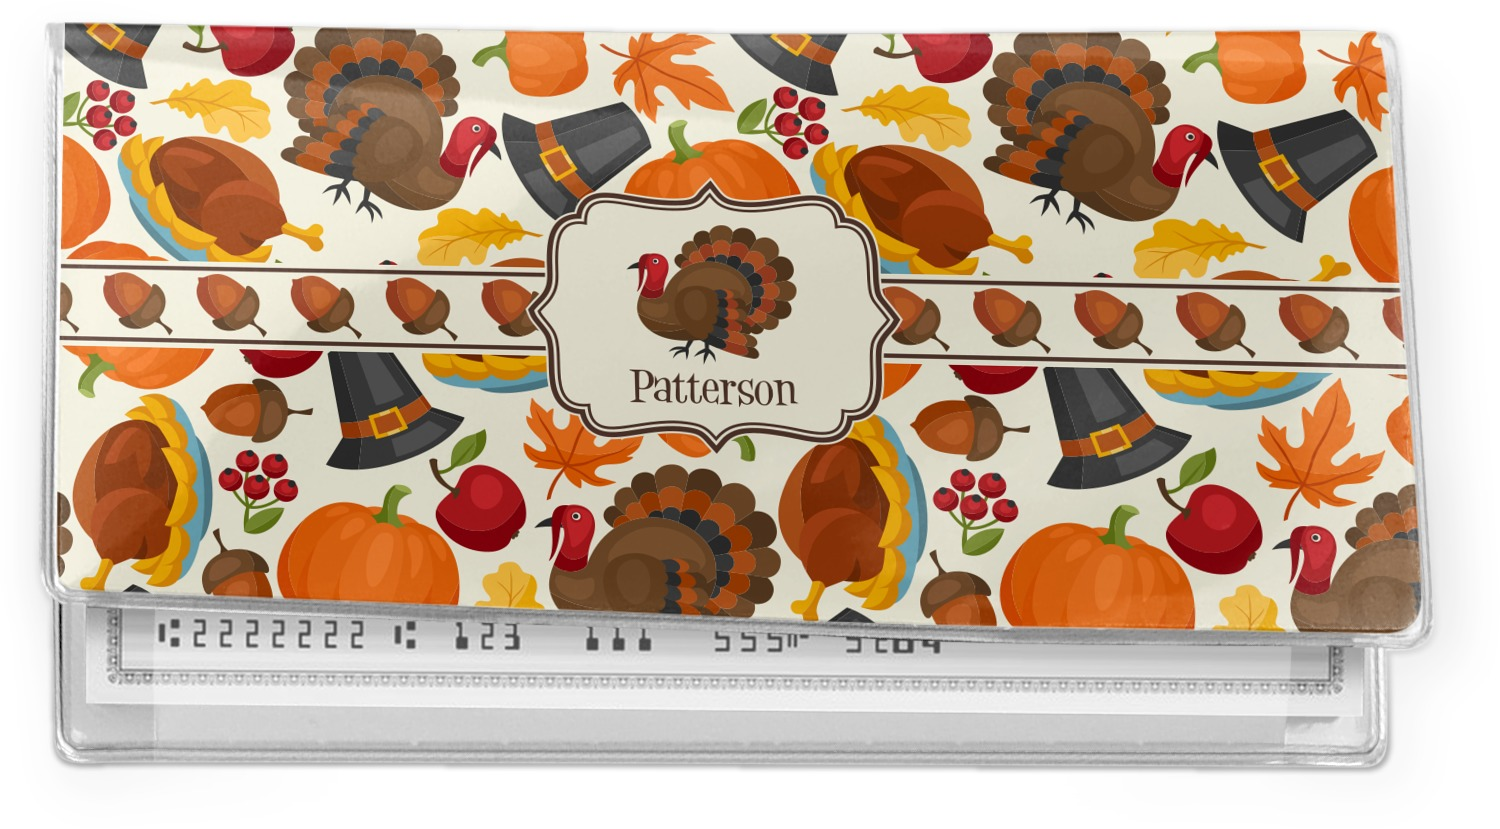 Thanksgiving Cookbook Cover : Traditional thanksgiving vinyl check book cover